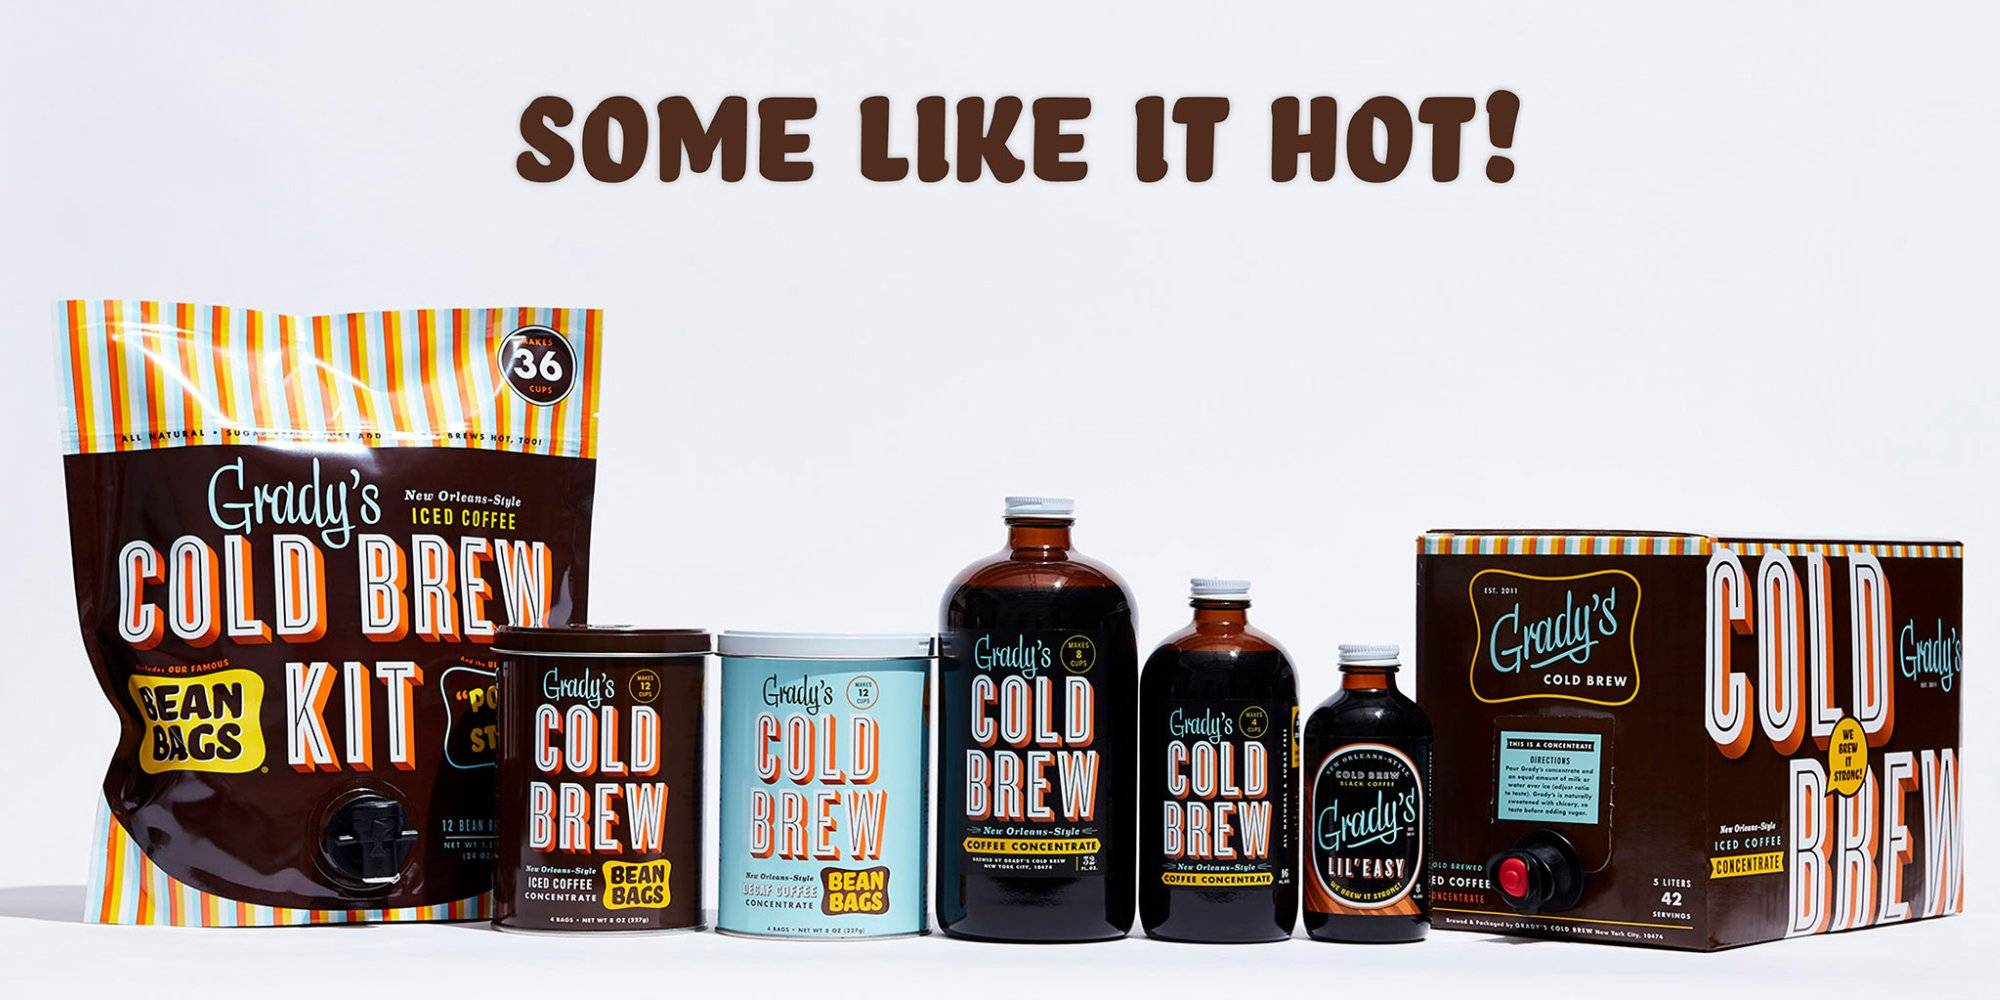 Try GRADY'S COLD BREW HOT!